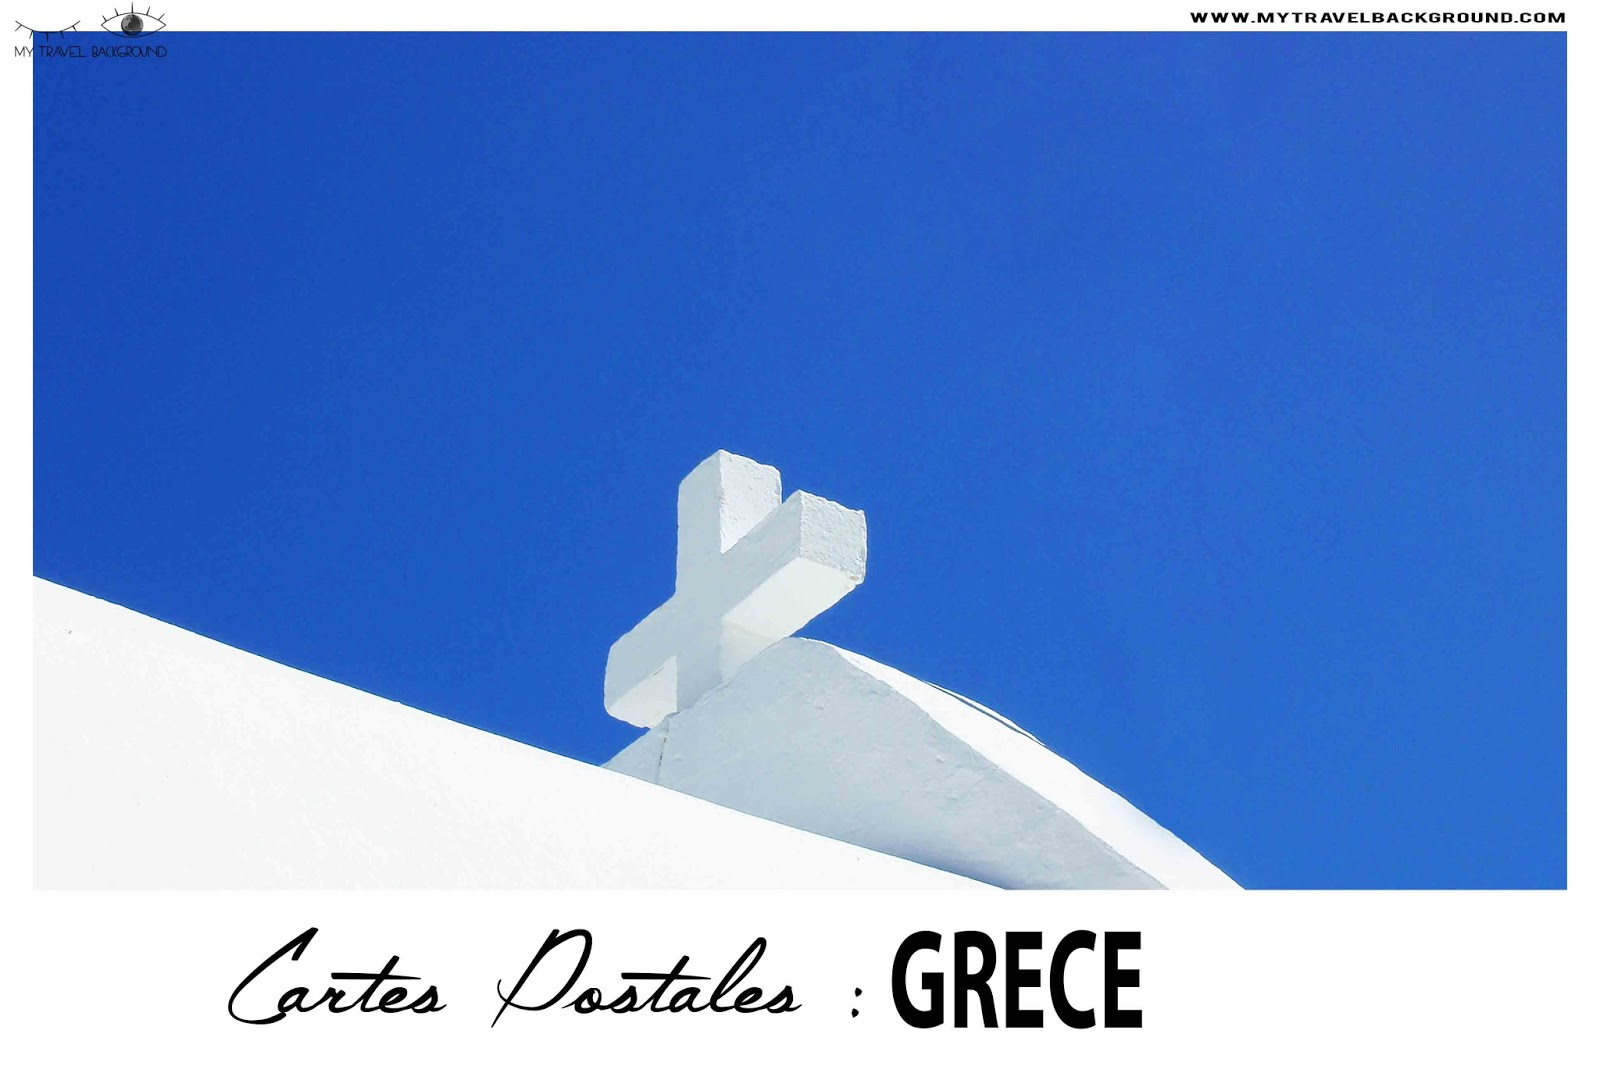 My Travel Background : Cartes Postale Grece